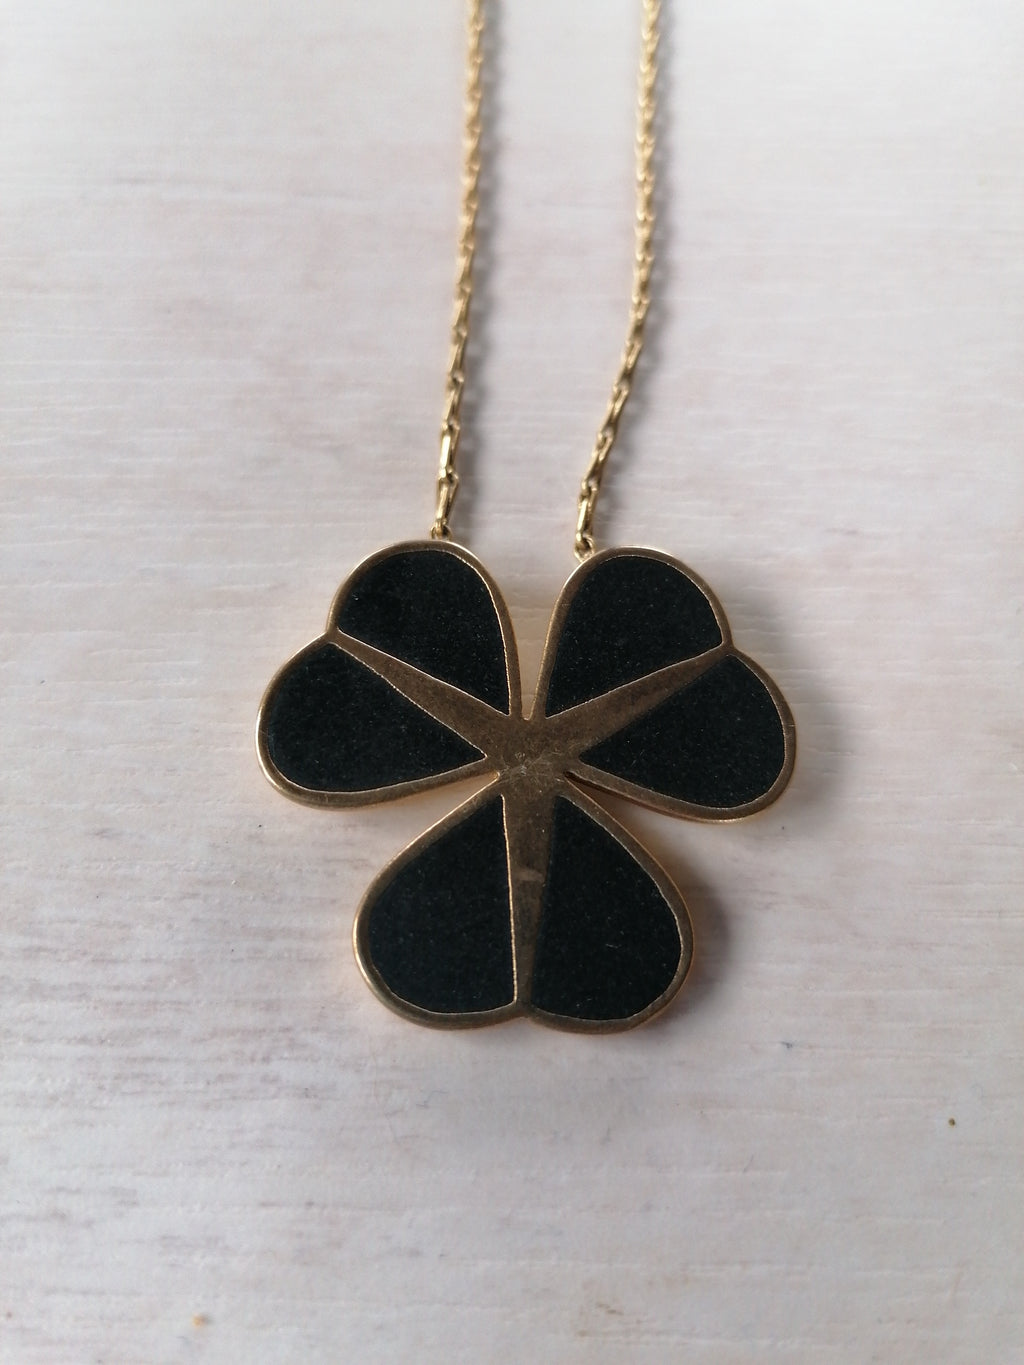 pilgrim shamrock necklace £25.99 now £10